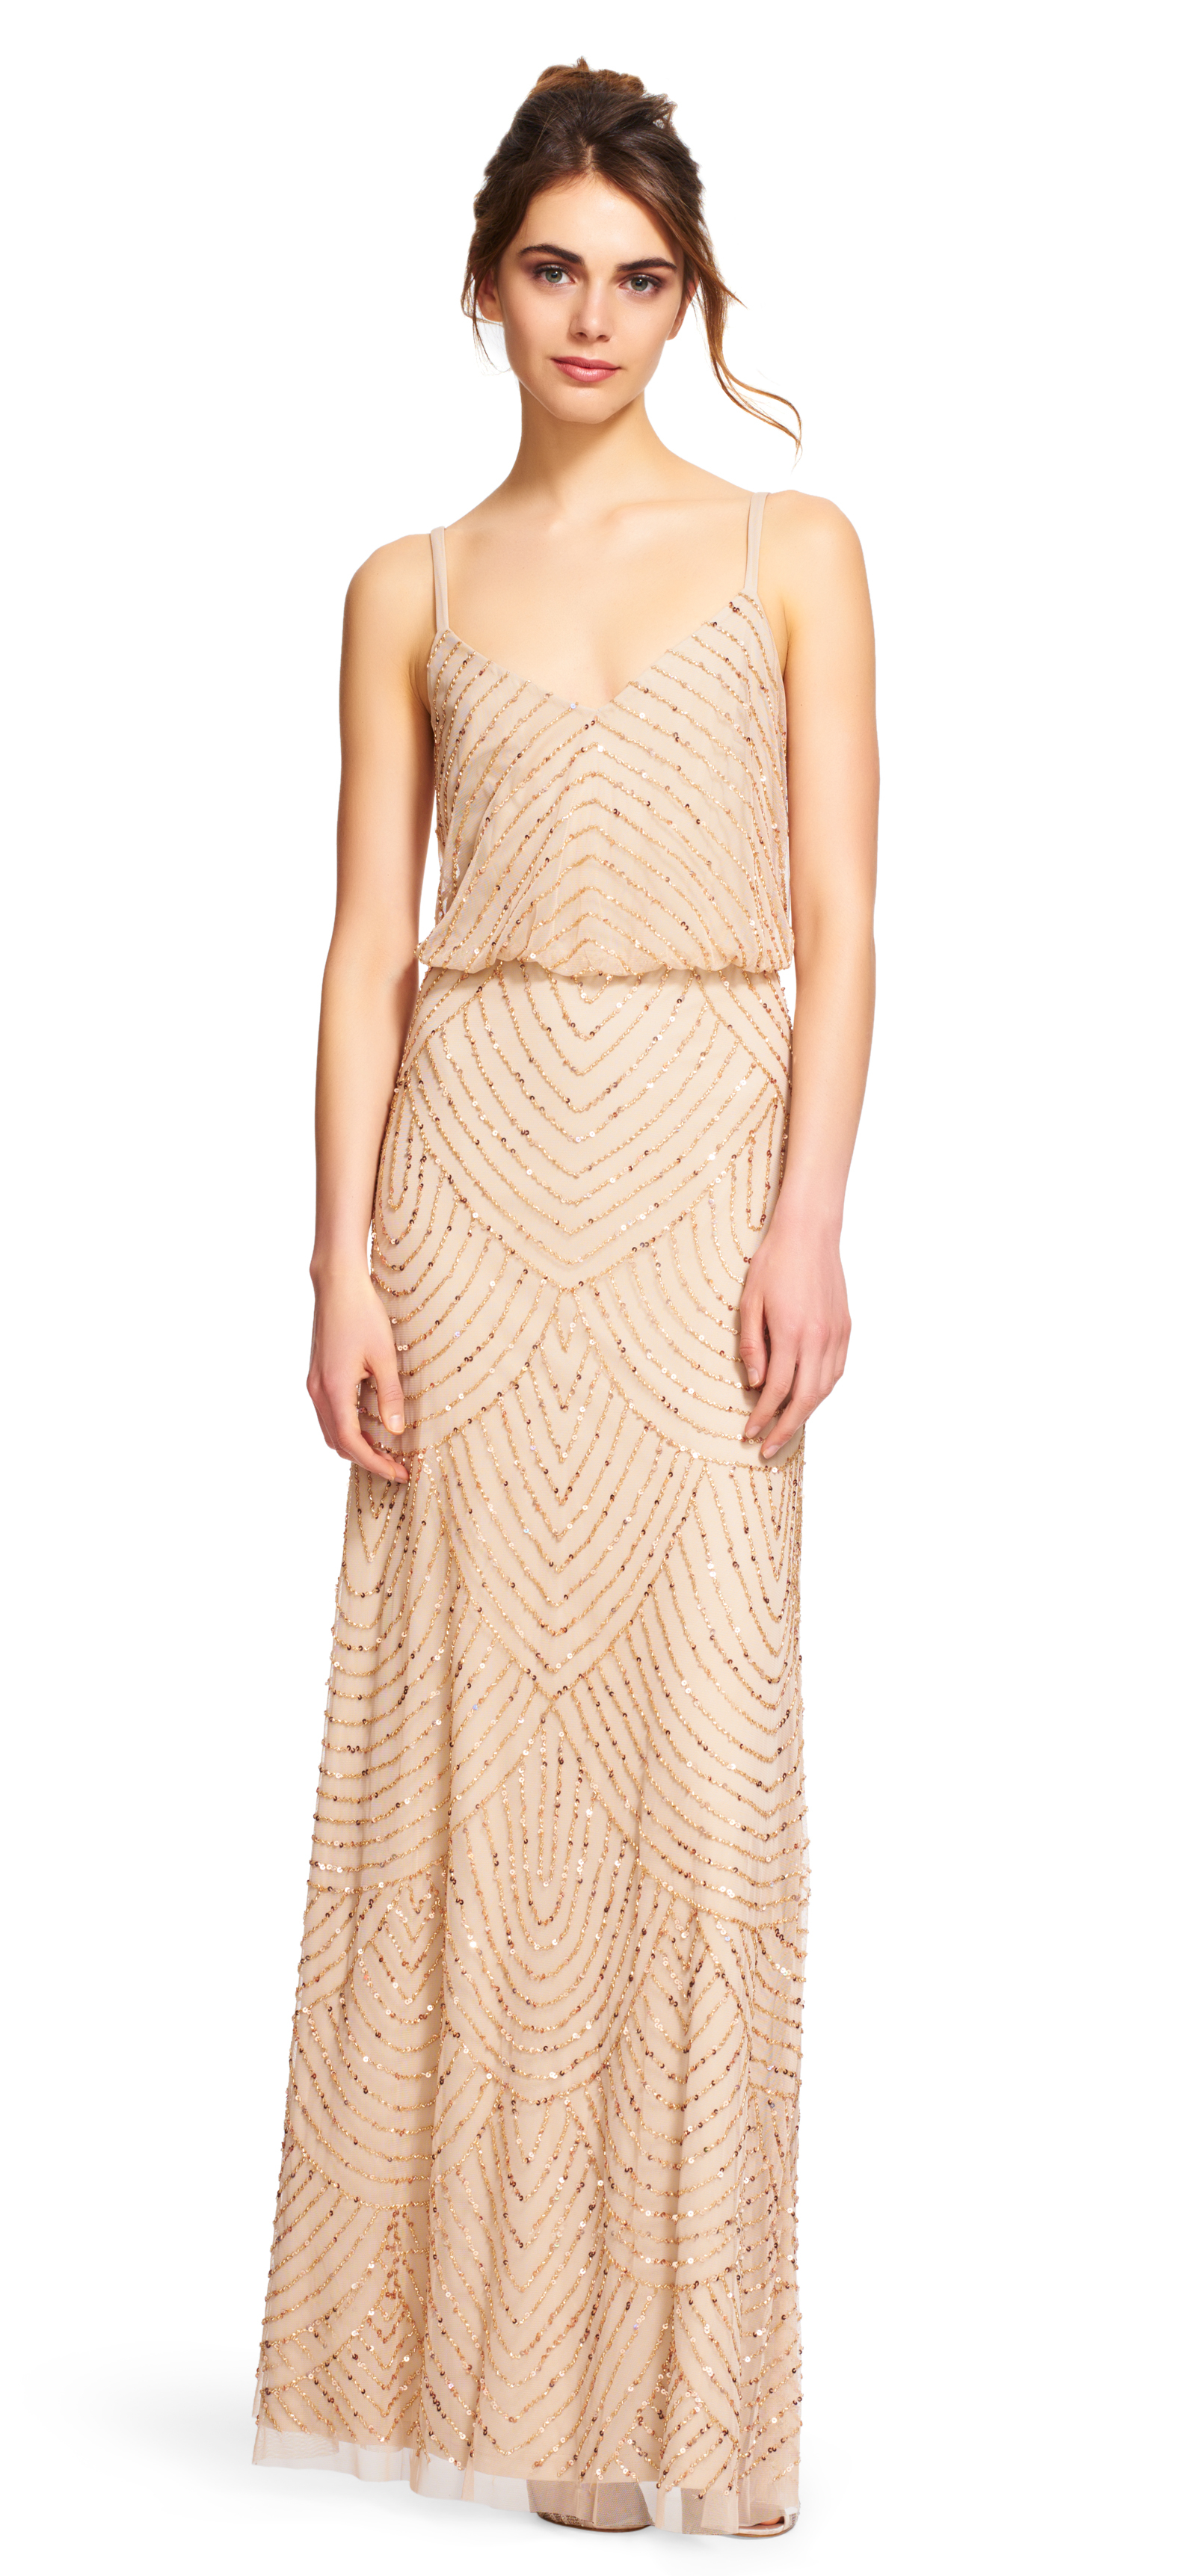 Adrianna Papell Art Deco Beaded Blouson Gown In Metallic